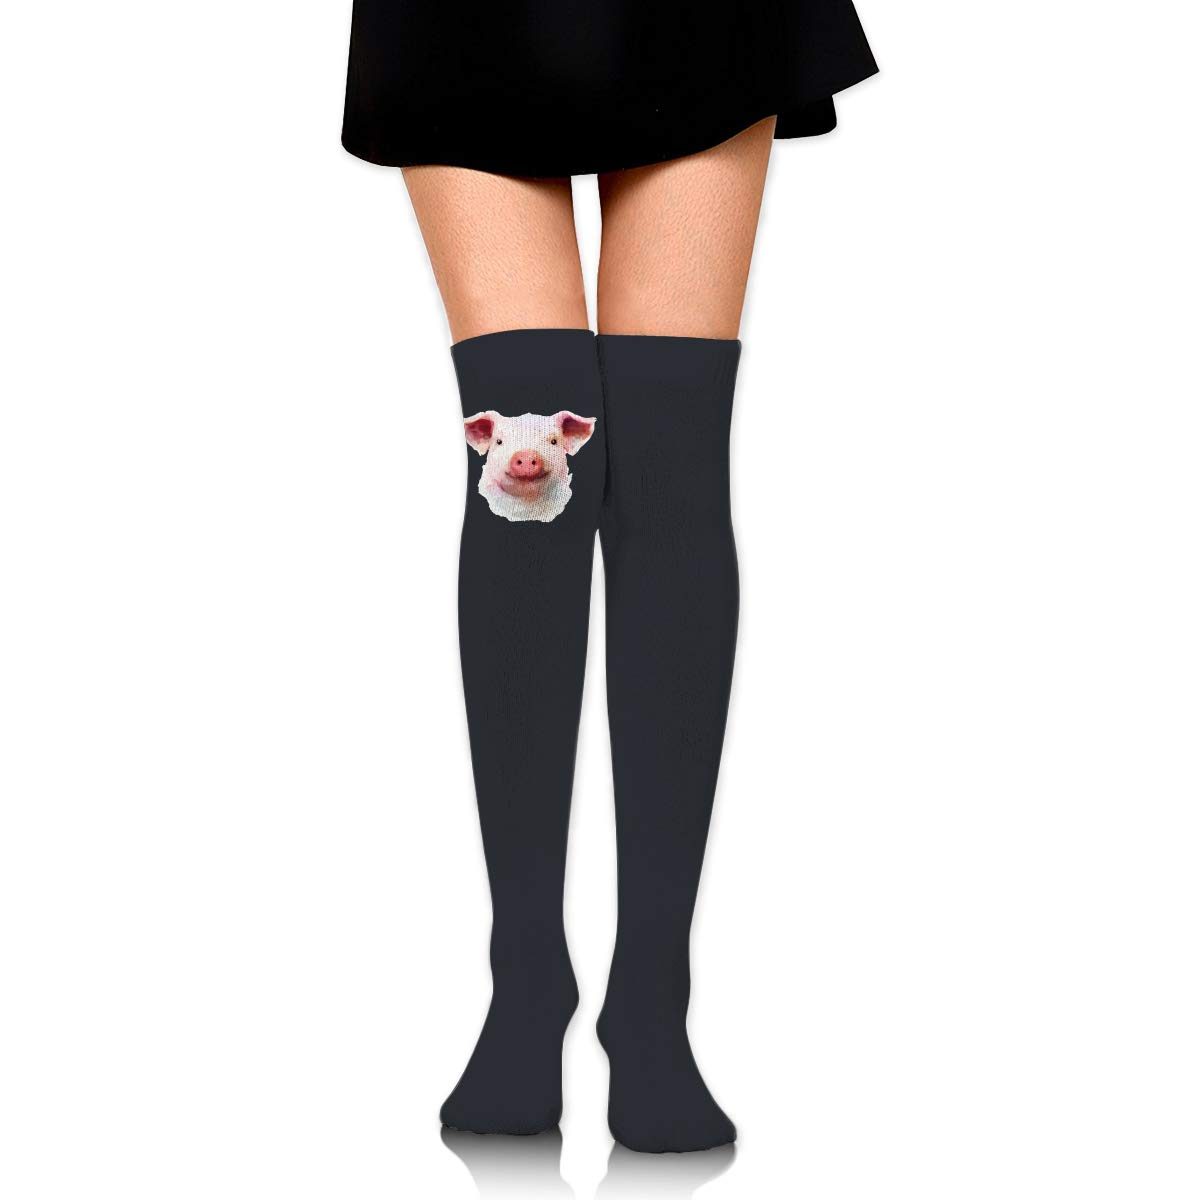 Funny Pig Long Tight Thigh High Socks Over The Knee High Boot Stockings Leg Warmers